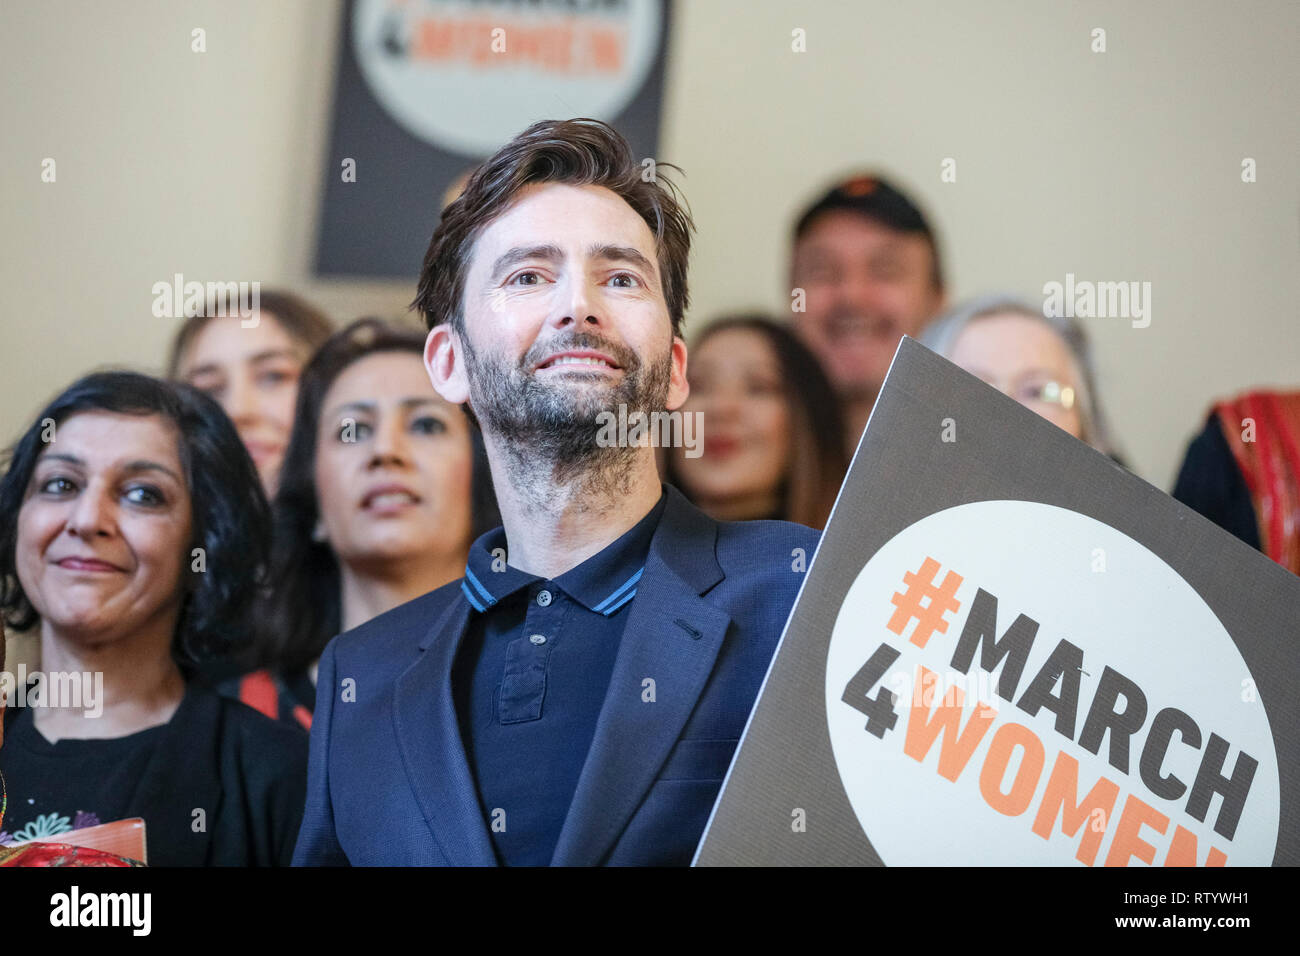 London, UK, 3rd Mar 2019. Actor David Tennant (right) and actress Meera Syal (left next to him). March4Women is CARE International's annual month of action for gender equality. This year's London event is held at Central Hall, rather than as an outdoor rally, and features speeches, debate and musical performances from celebrity supporters. Credit: Imageplotter/Alamy Live News - Stock Image